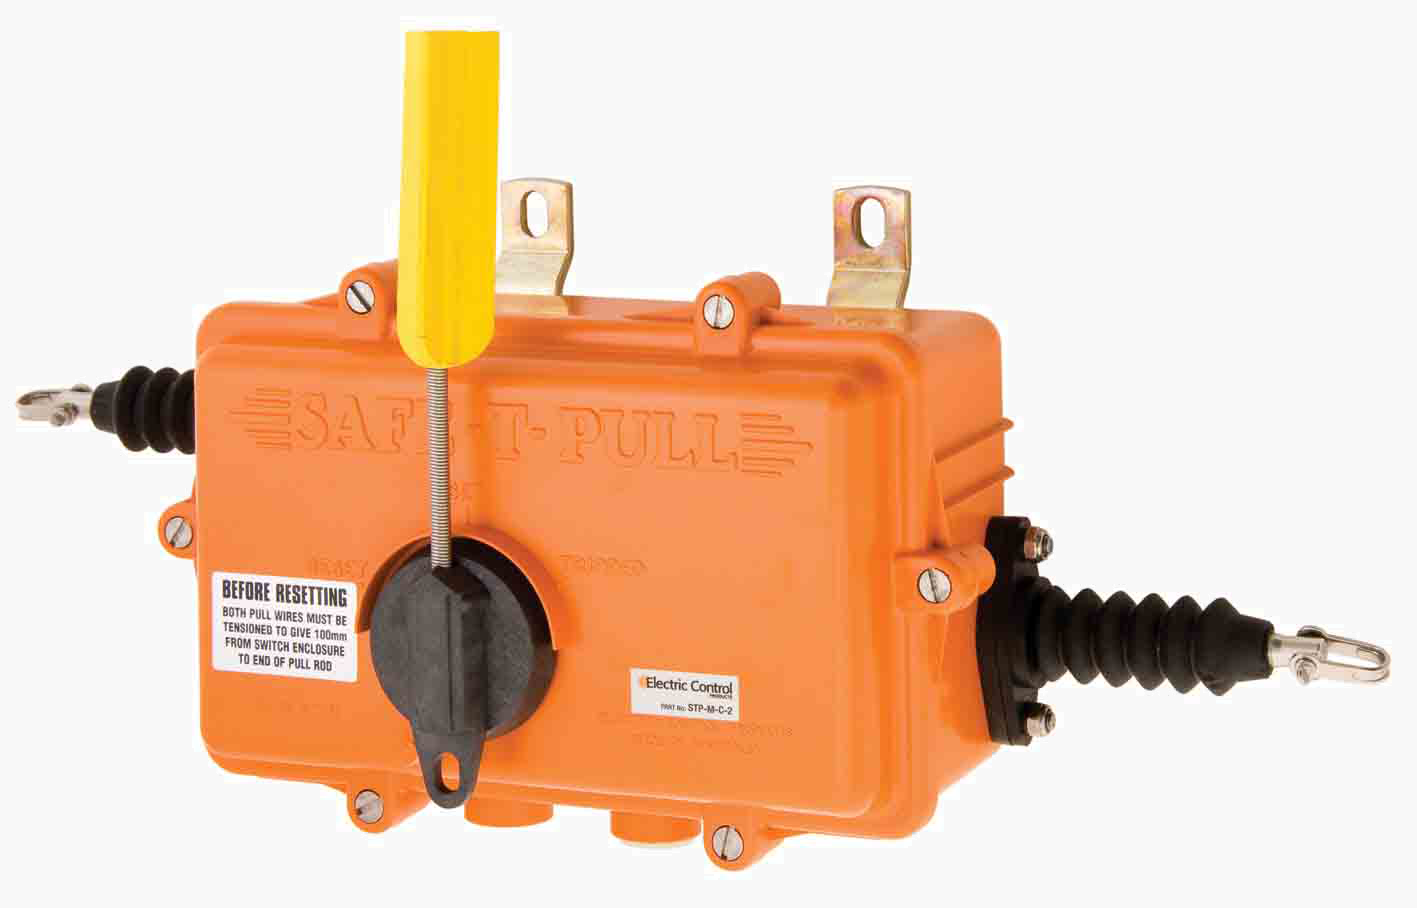 Safe-T-Pull (PBT/PC and Static Dissipative).